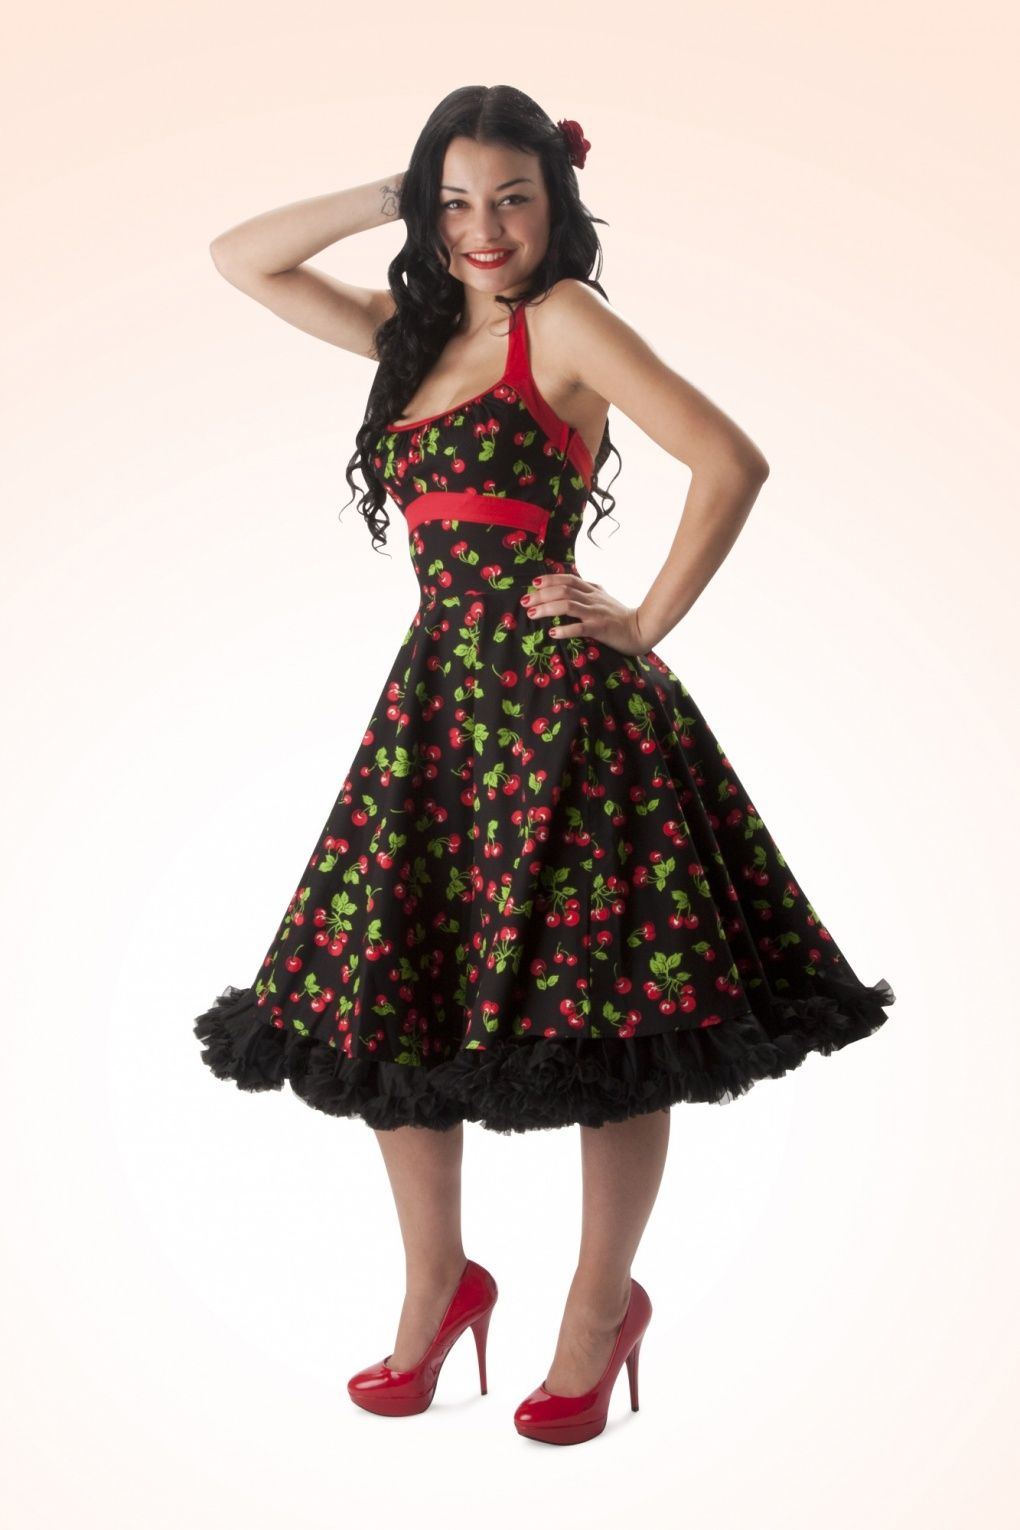 The Daisy cherry swing dress is one of the most popular dress silhouettes from Pinup Couture, with its fun, flirty, and very feminine cut.